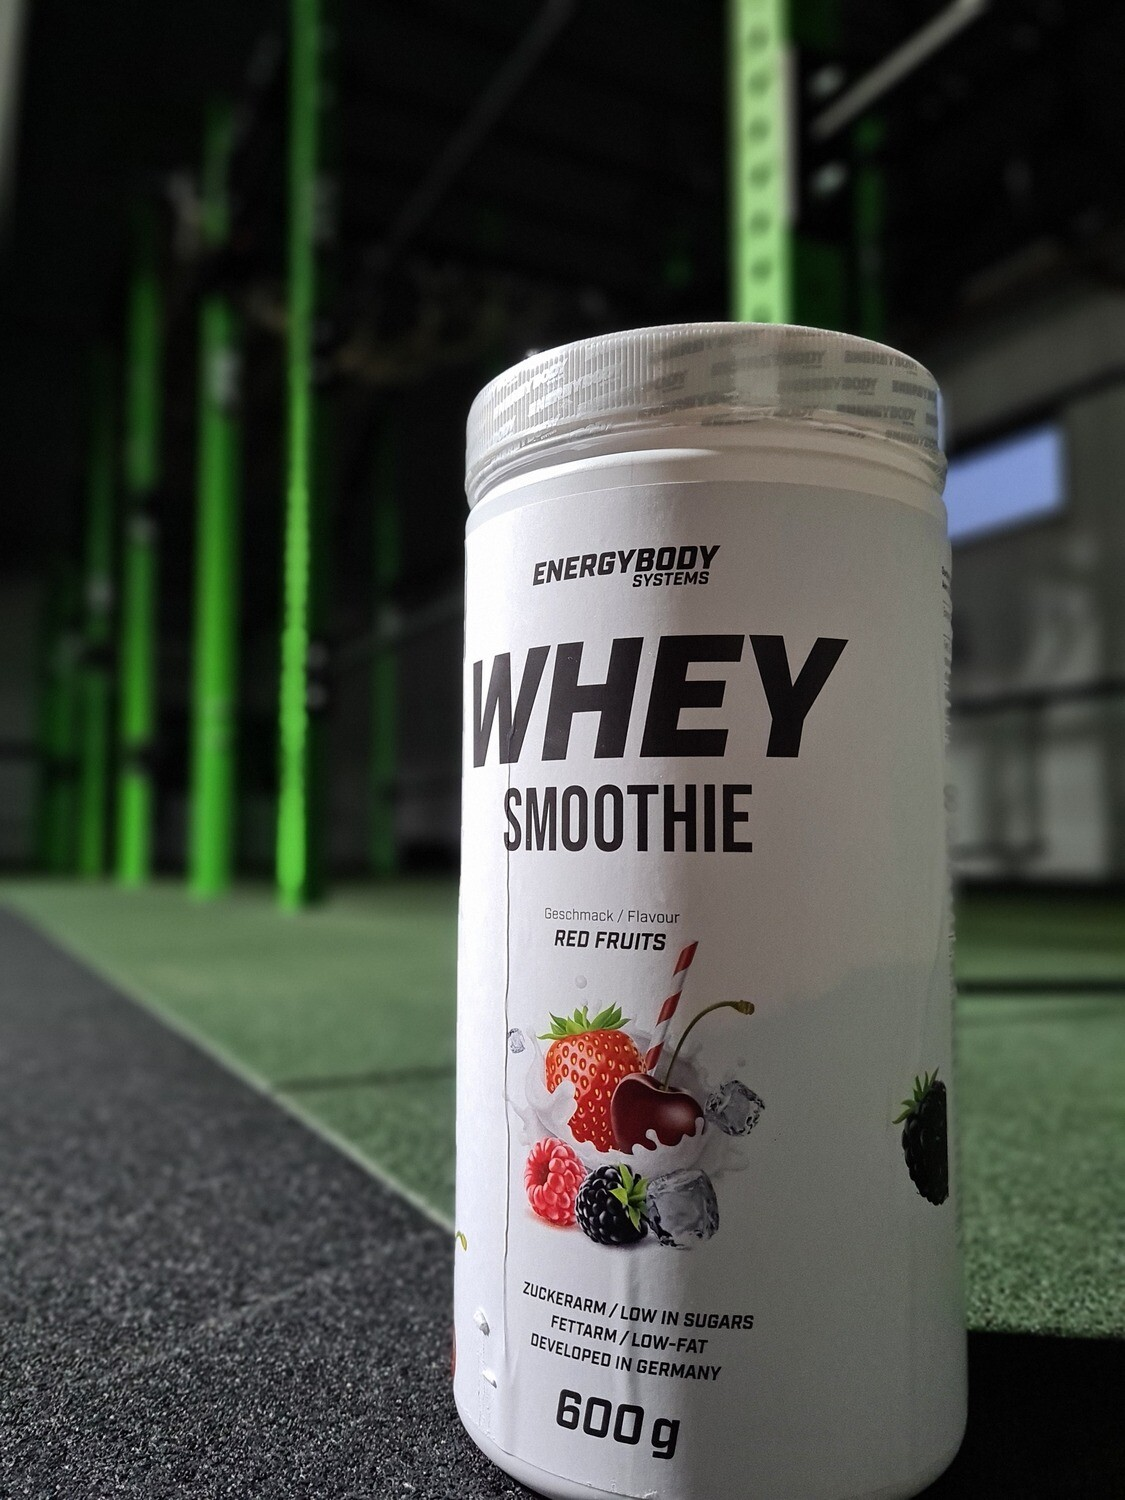 Energy Body Smoothie Whey